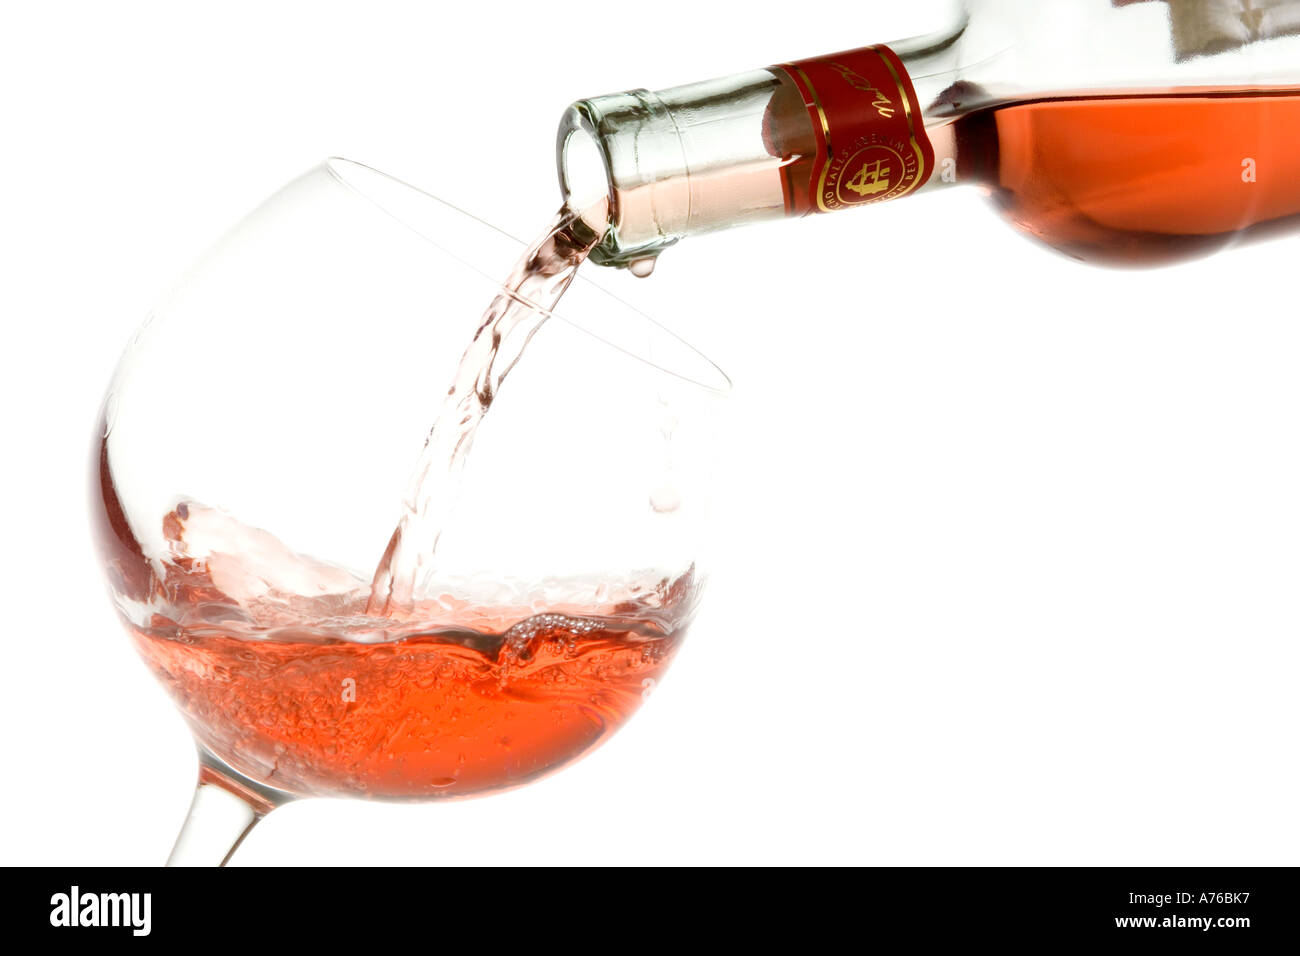 Rose wine being poured into a large glass on a pure white background Stock Photo - Alamy